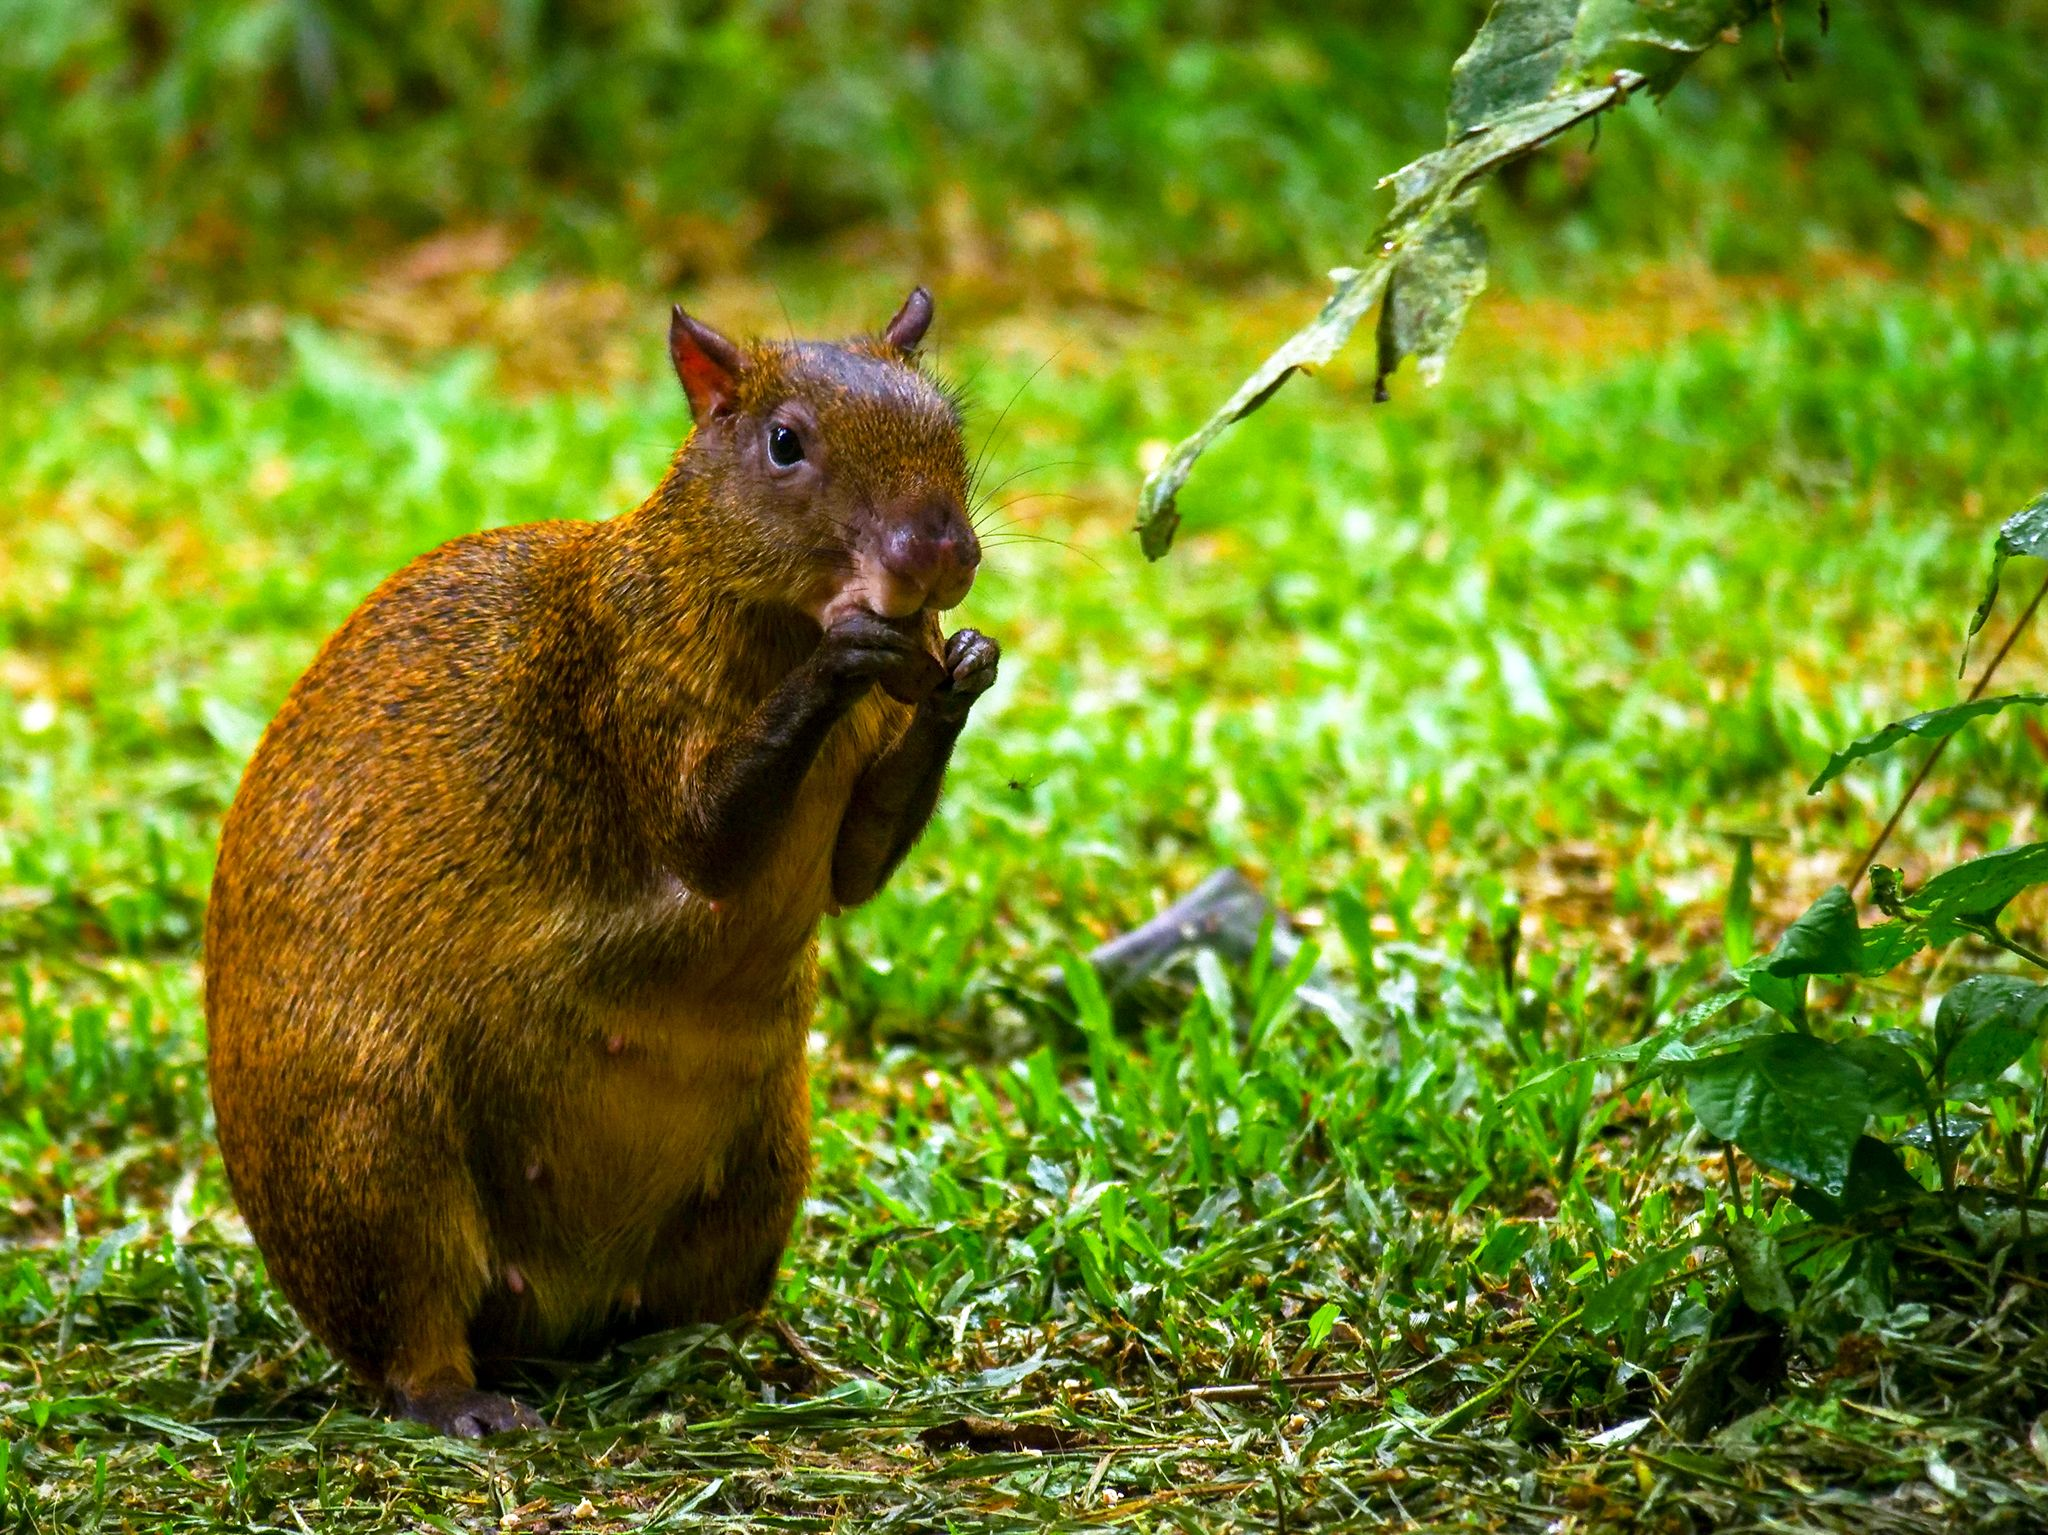 Agouti feeding on nuts. This image is from Wild Peru: Andes Battleground. [Photo of the day - October 2020]